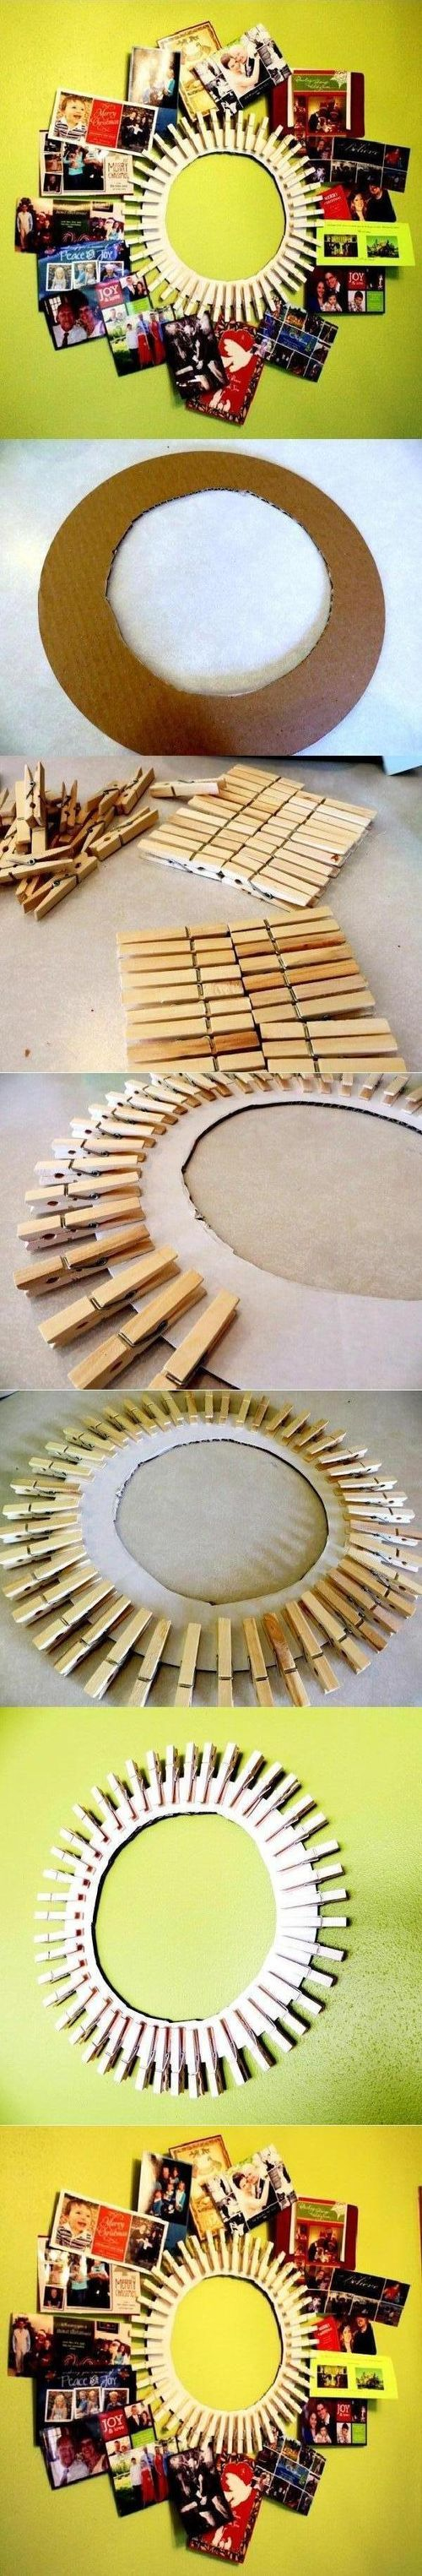 DIY Clothespin Picture Frame DIY Projects / UsefulDIY.com